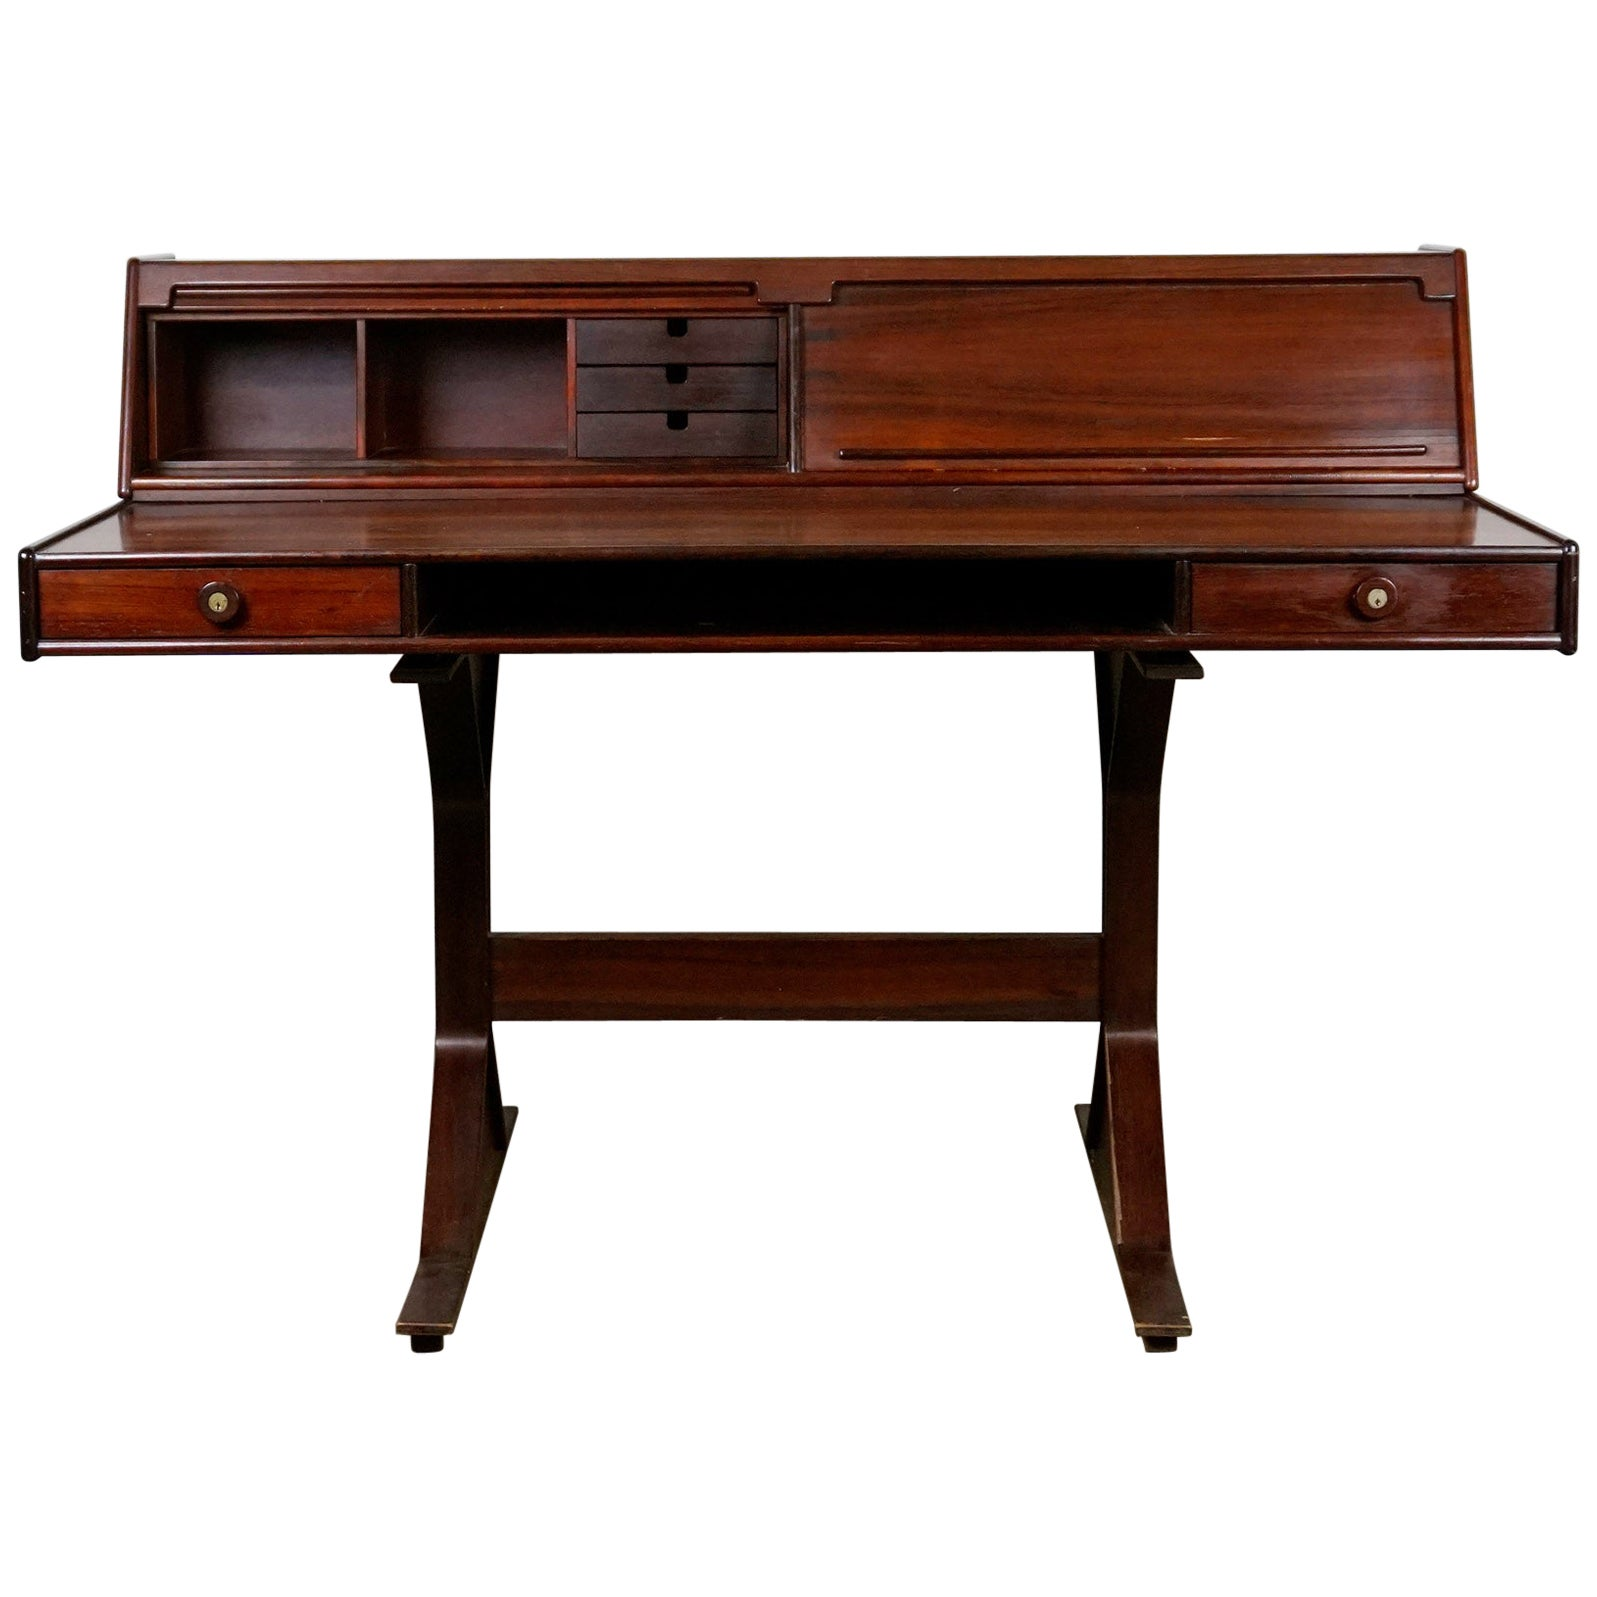 Italian Midcentury Rosewood Desk Mod. 530 by Gianfranco Frattini for Bernini